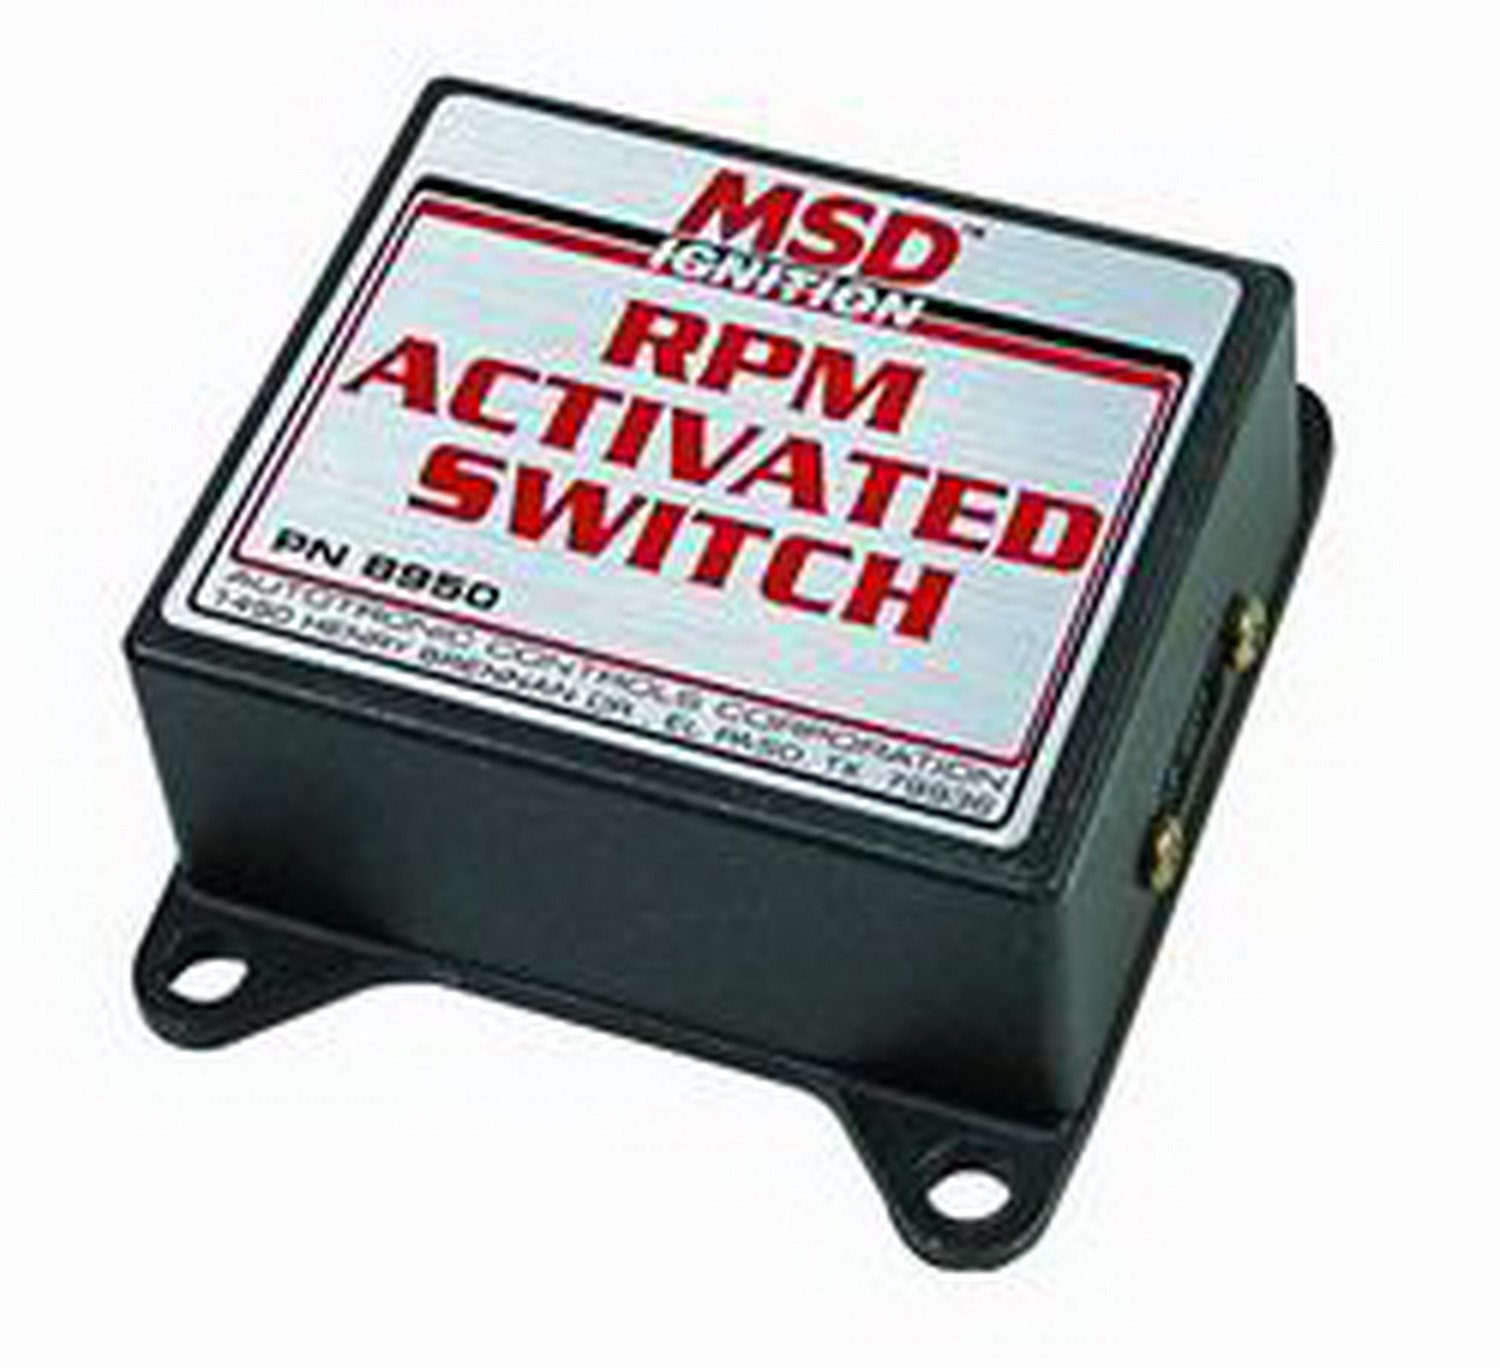 718qImz OBL._SL1500_ amazon com msd 8950 rpm activated switch automotive msd rpm switch wiring diagram at readyjetset.co